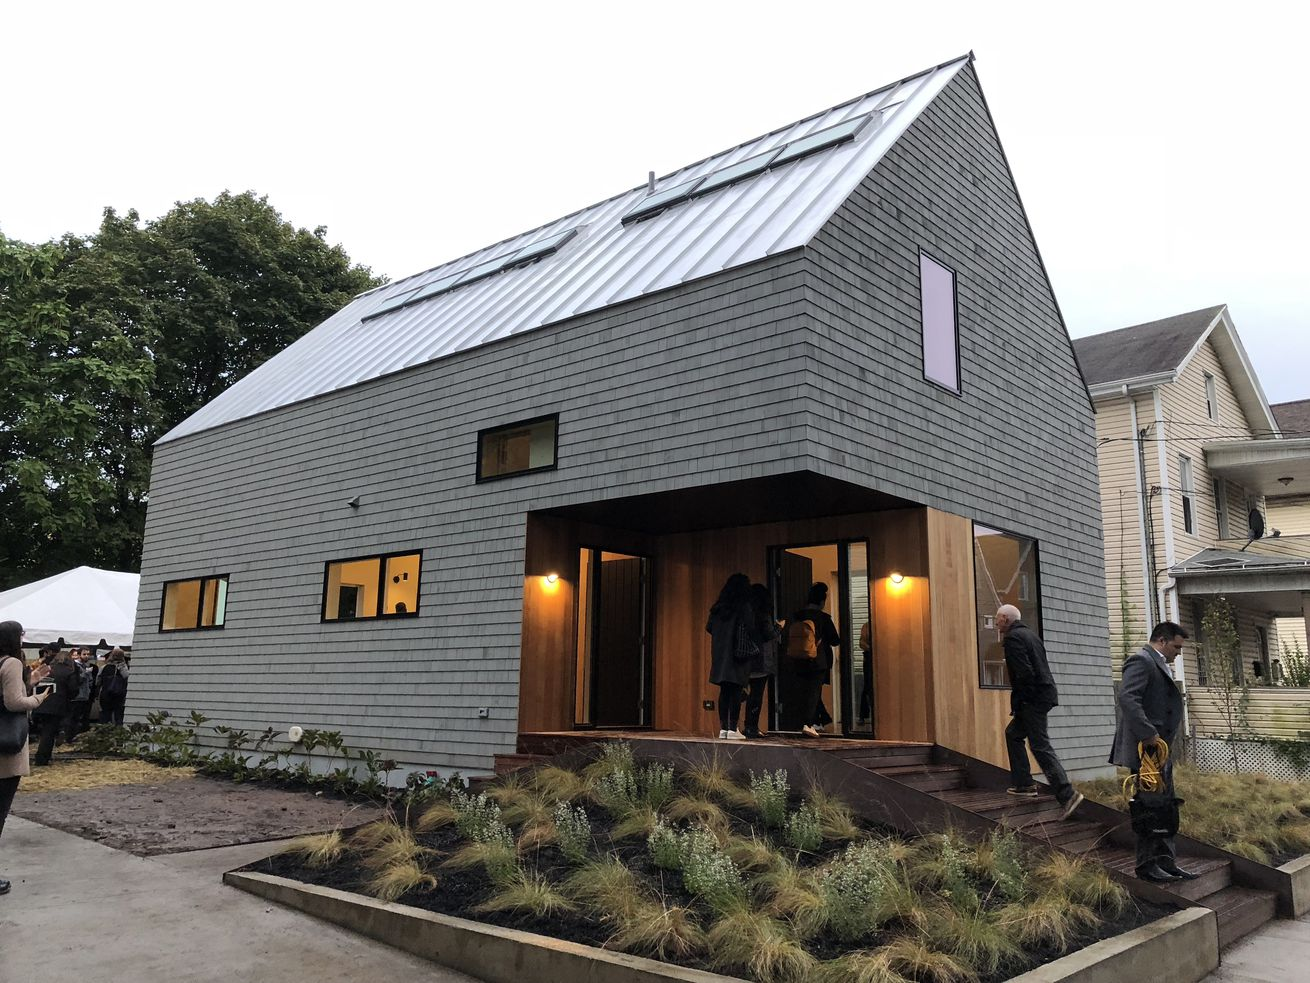 Yale architecture students built this innovative timber home for the formerly homeless